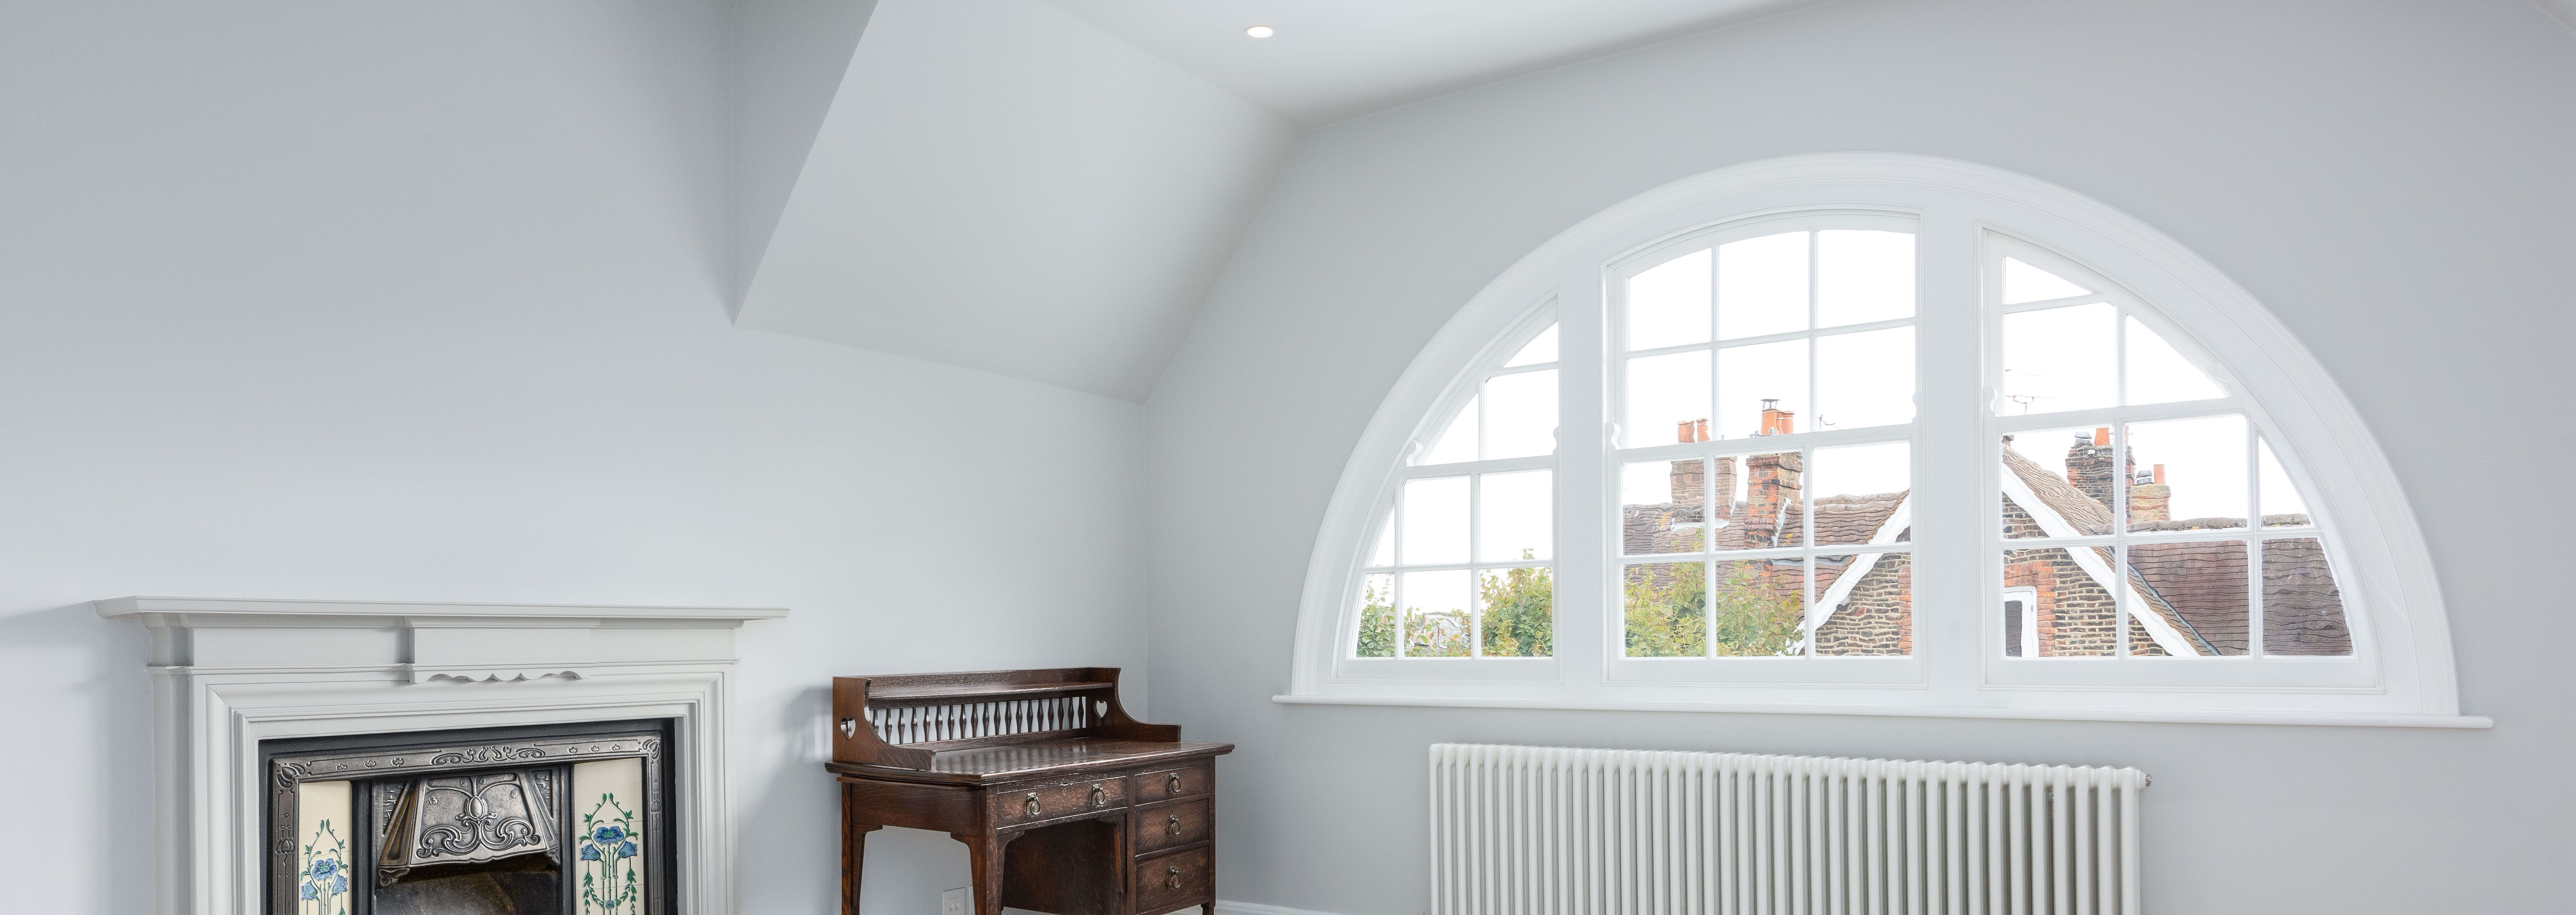 Curved double glazed sash window